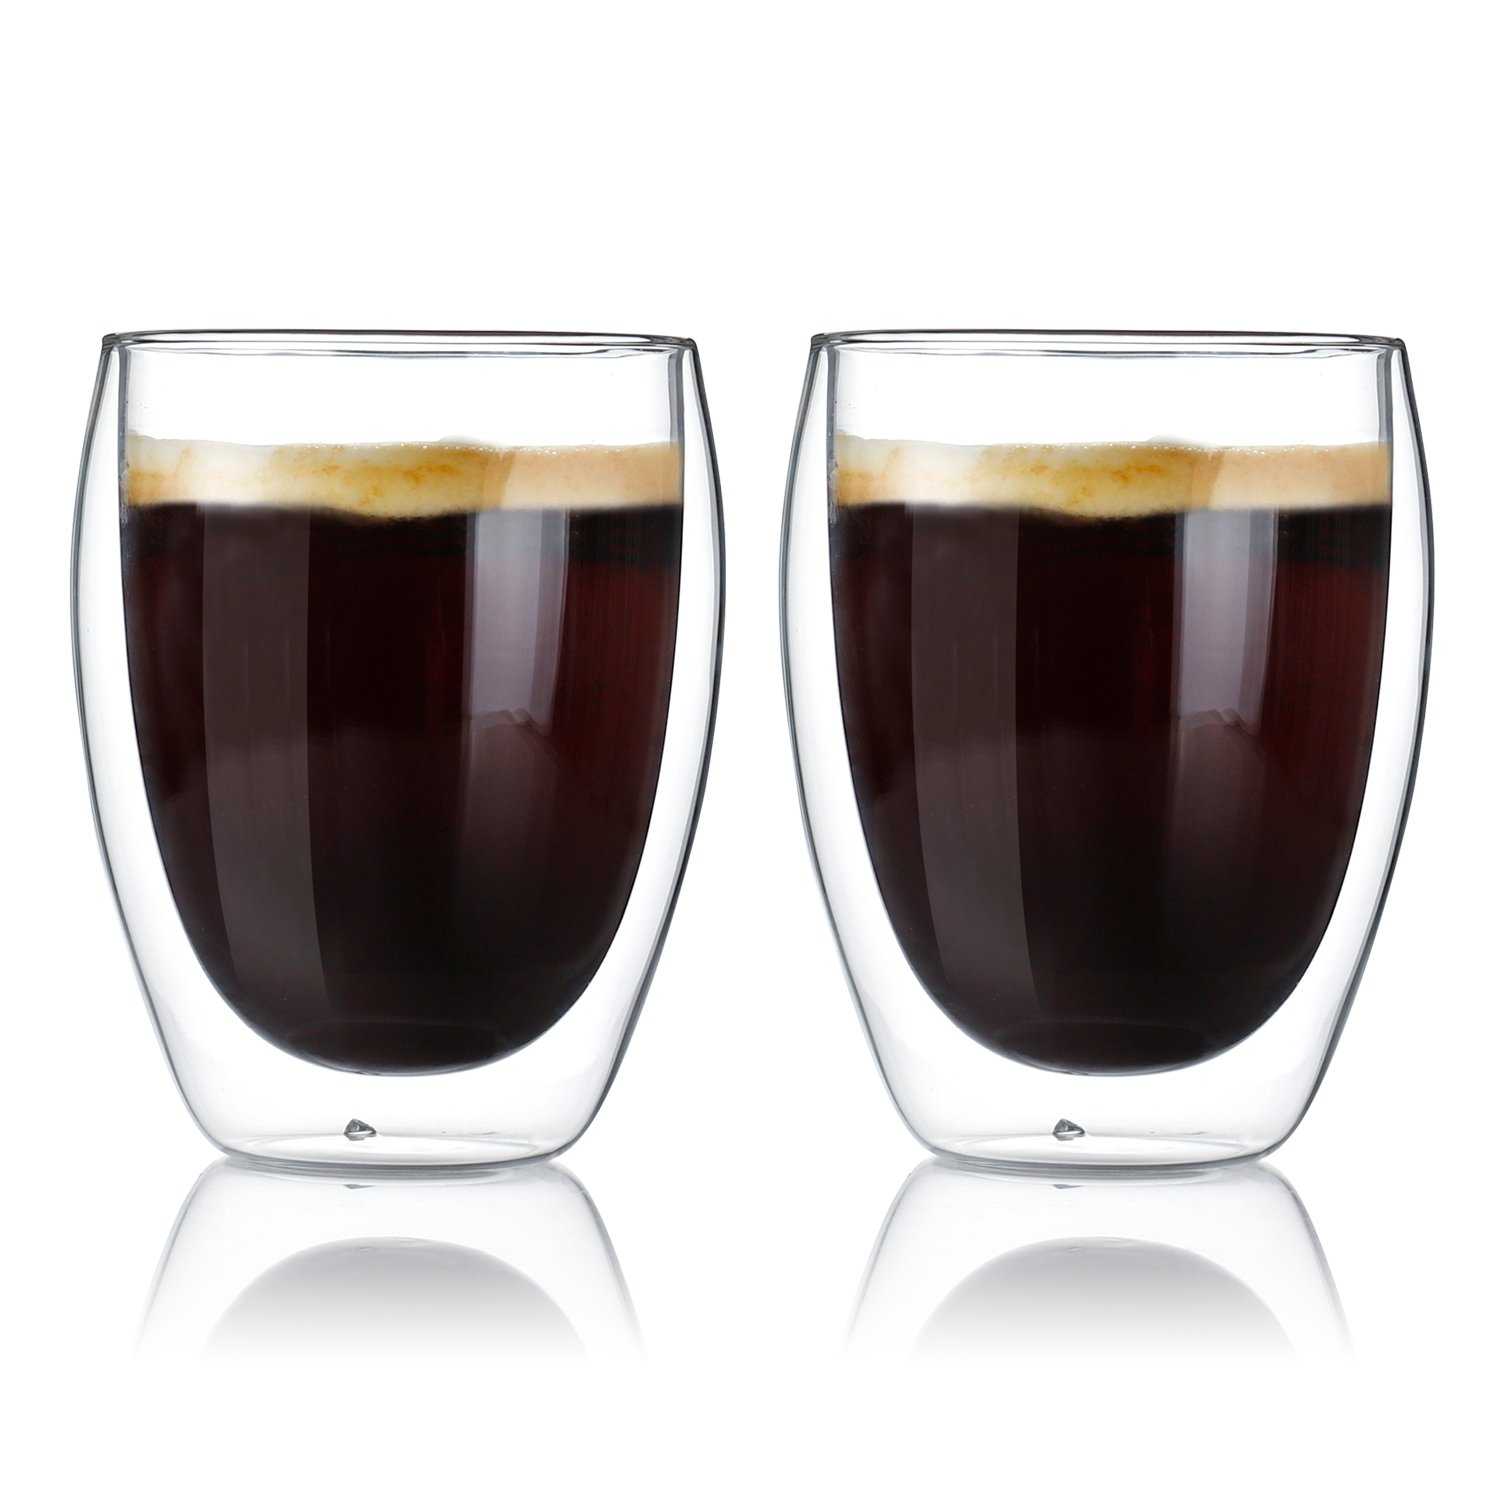 Sweese 4604 Glass Coffee Mugs - 12 Ounces, Double Wall Insulated Glasses Suitable for Cappuccino, Latte, Cream, Tea, Kinds of Beverage, Set of 2